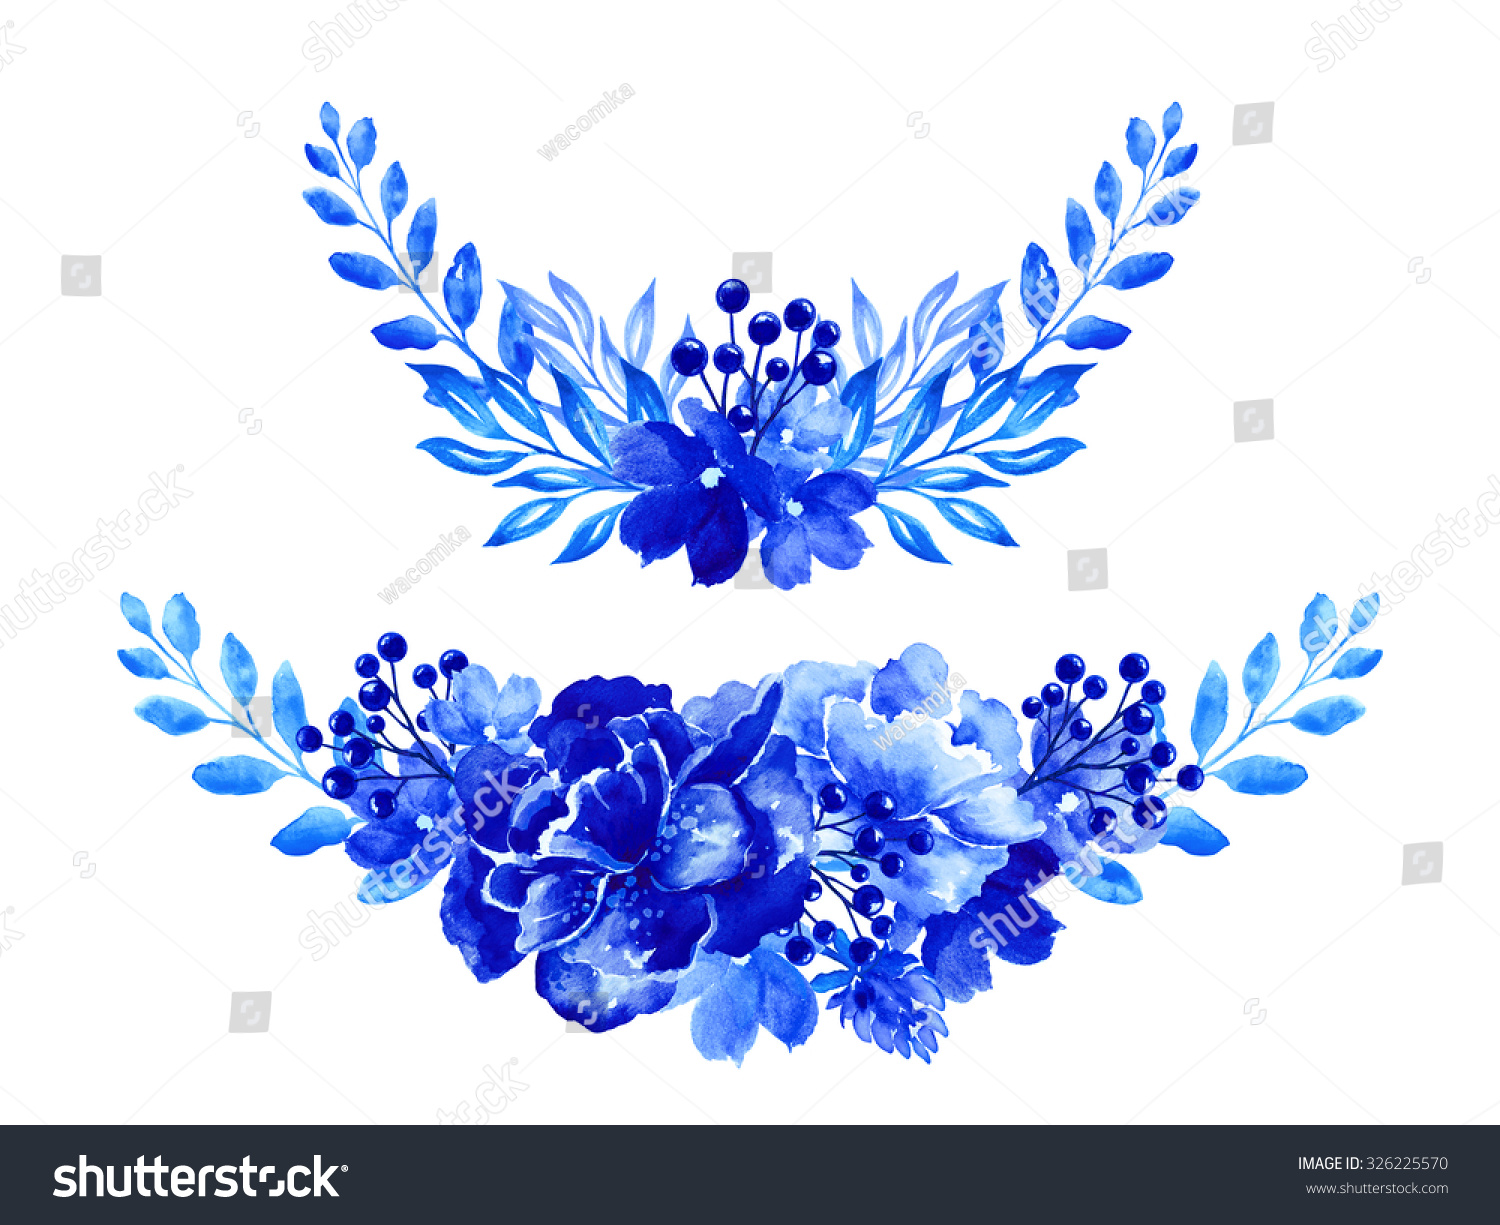 blue flower arrangement decorative floral design lager